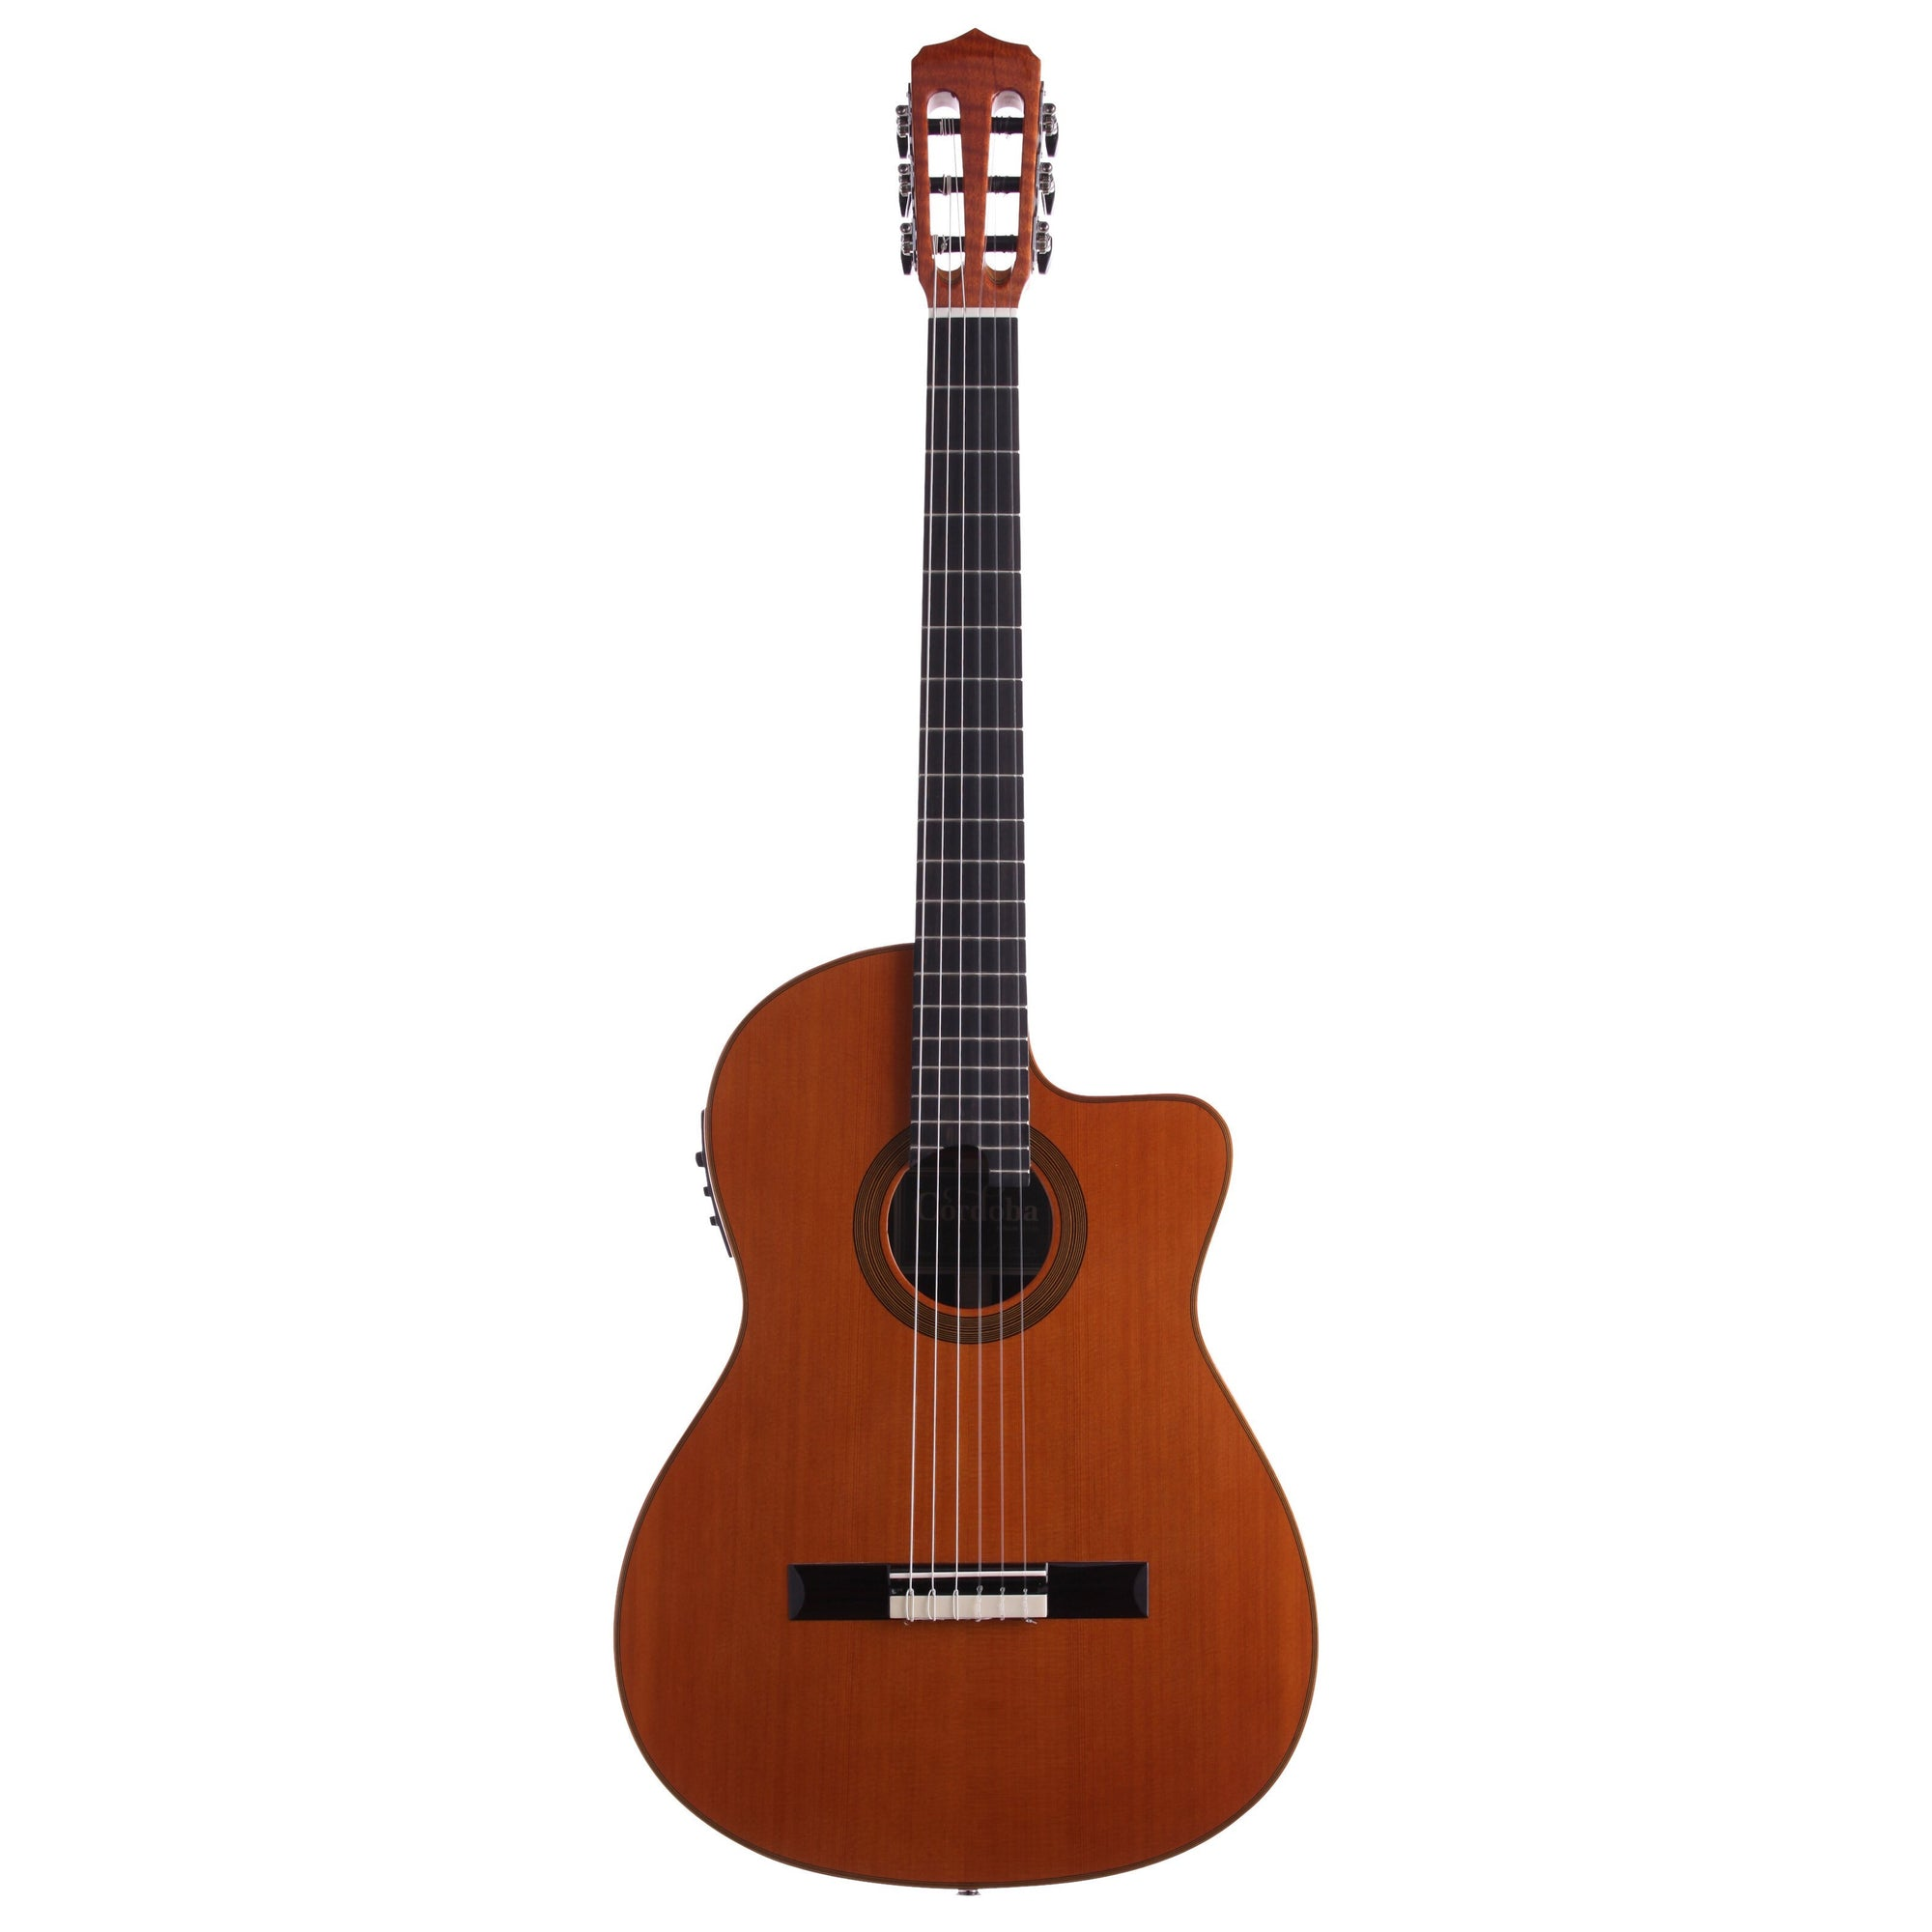 Cordoba Fusion Orchestra CE CDIN Classical Acoustic-Electric Guitar, Solid Canadian Cedar Top